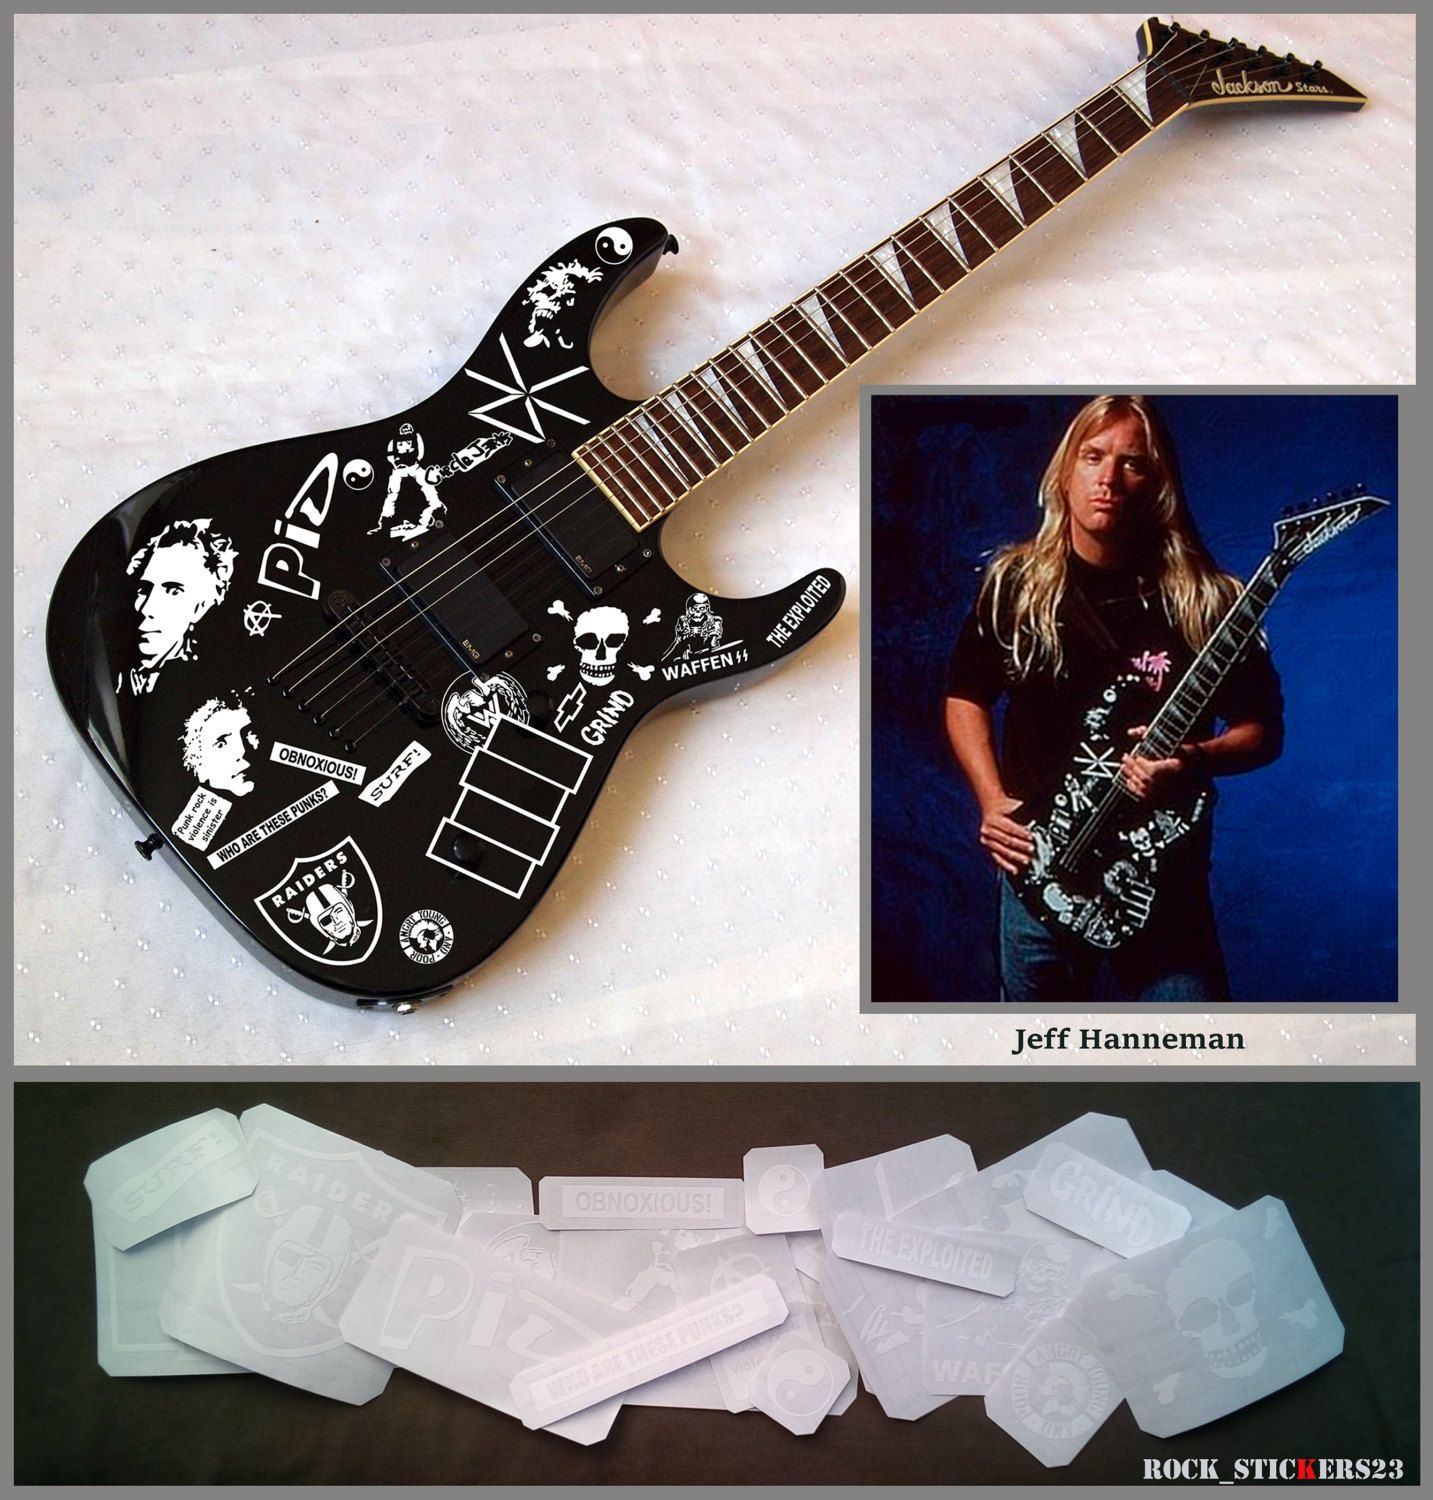 Jeff Hanneman Guitar Stickers Signature Vinyl Decal Slayer Jackson - Custom vinyl decals for guitars